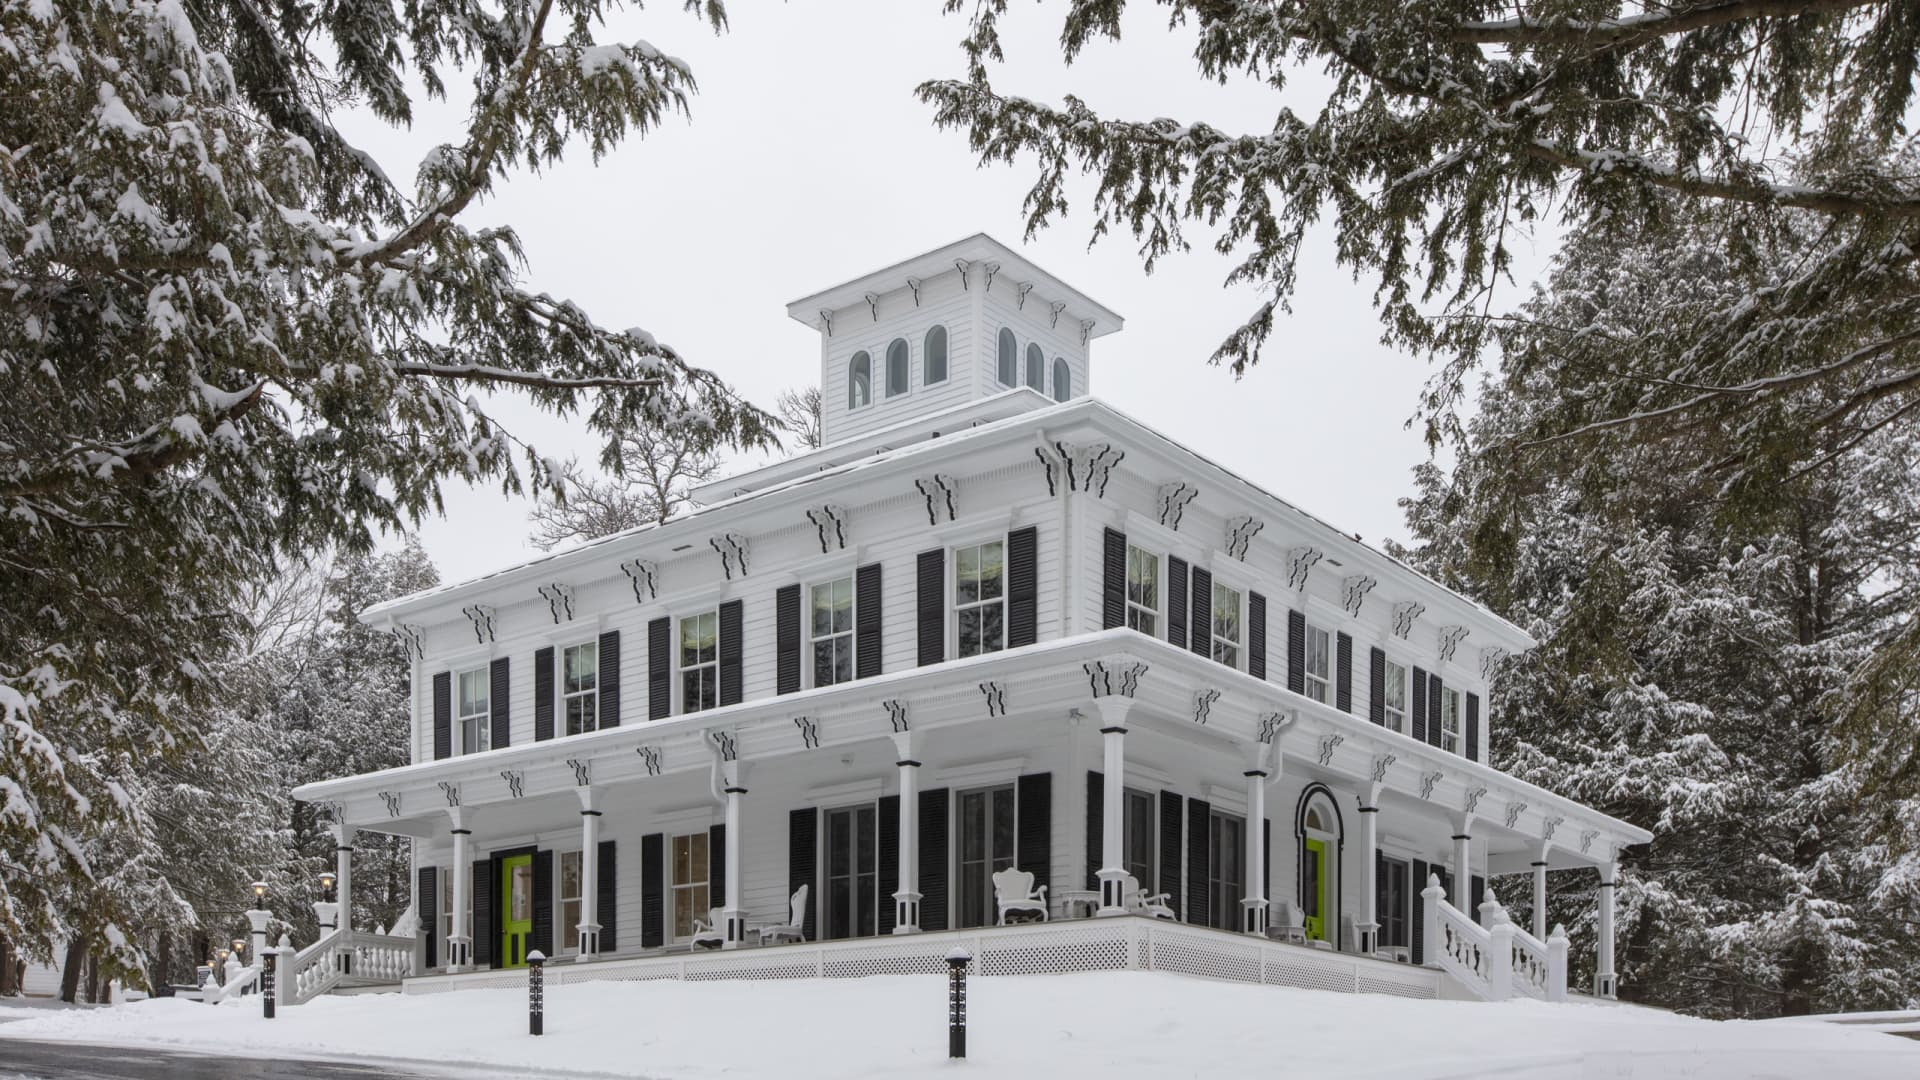 The Roxbury at Stratton Falls has themed mansion rooms and tower cottages.